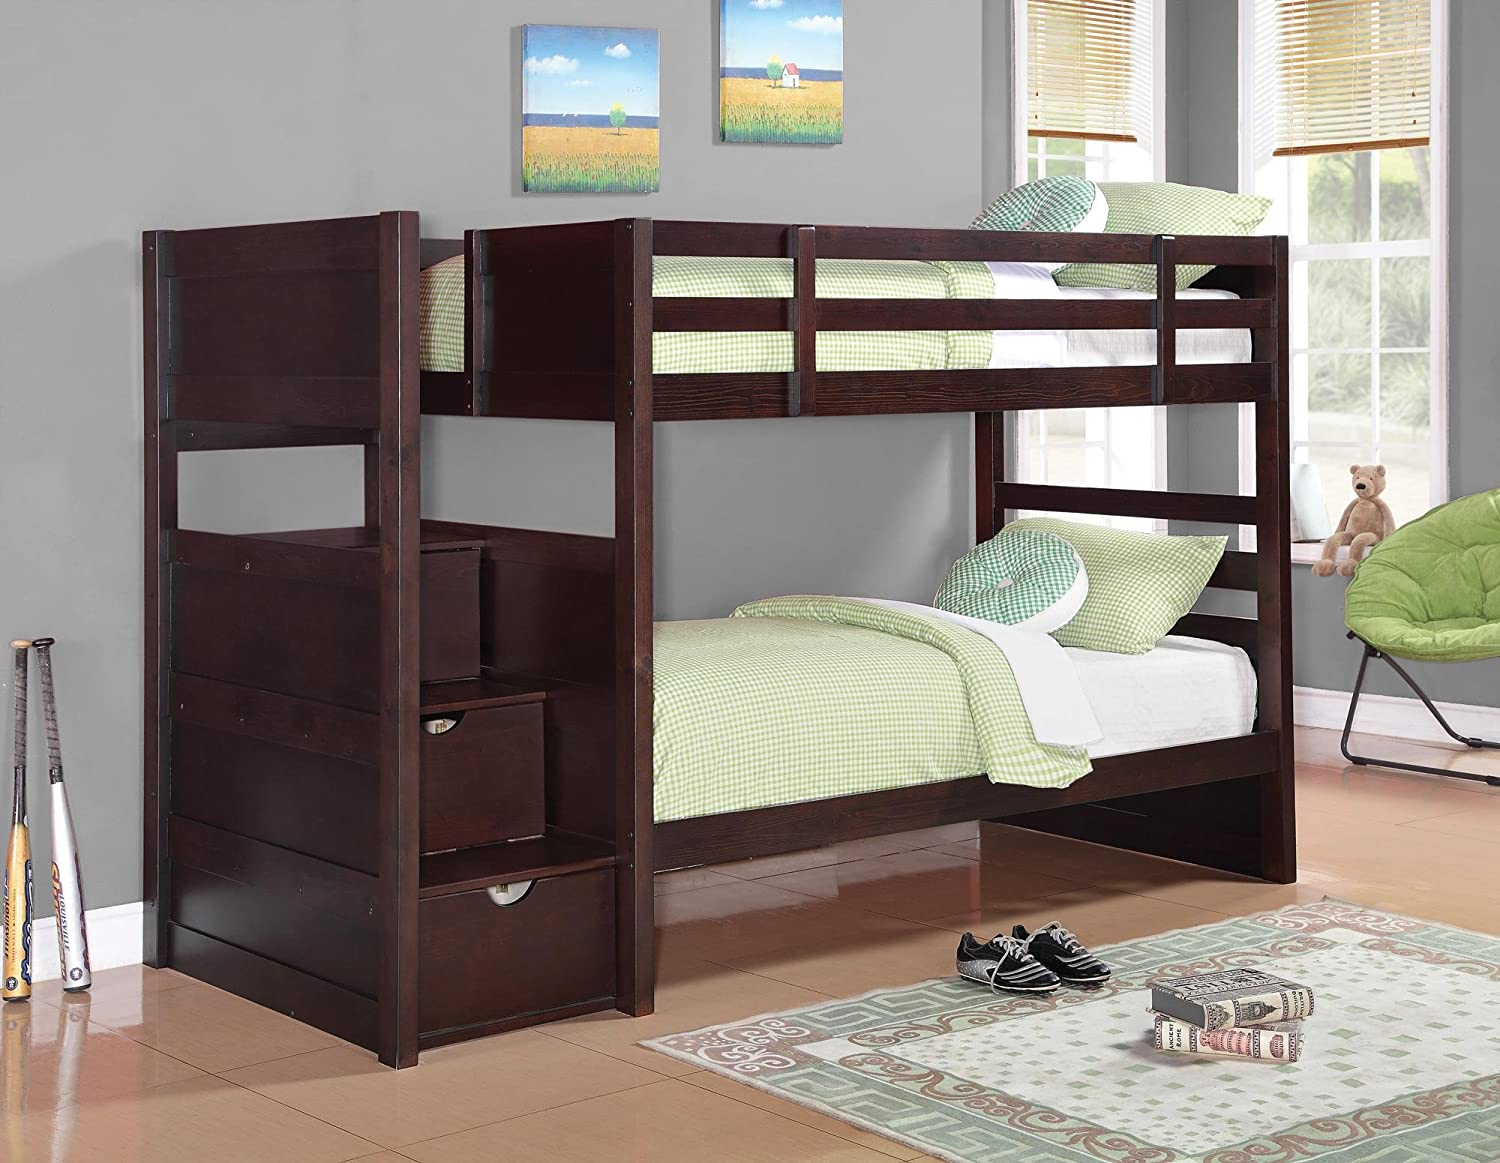 Amazon.com: Twin Over Twin Bunk Bed in Cappuccino Finish: Kitchen ...